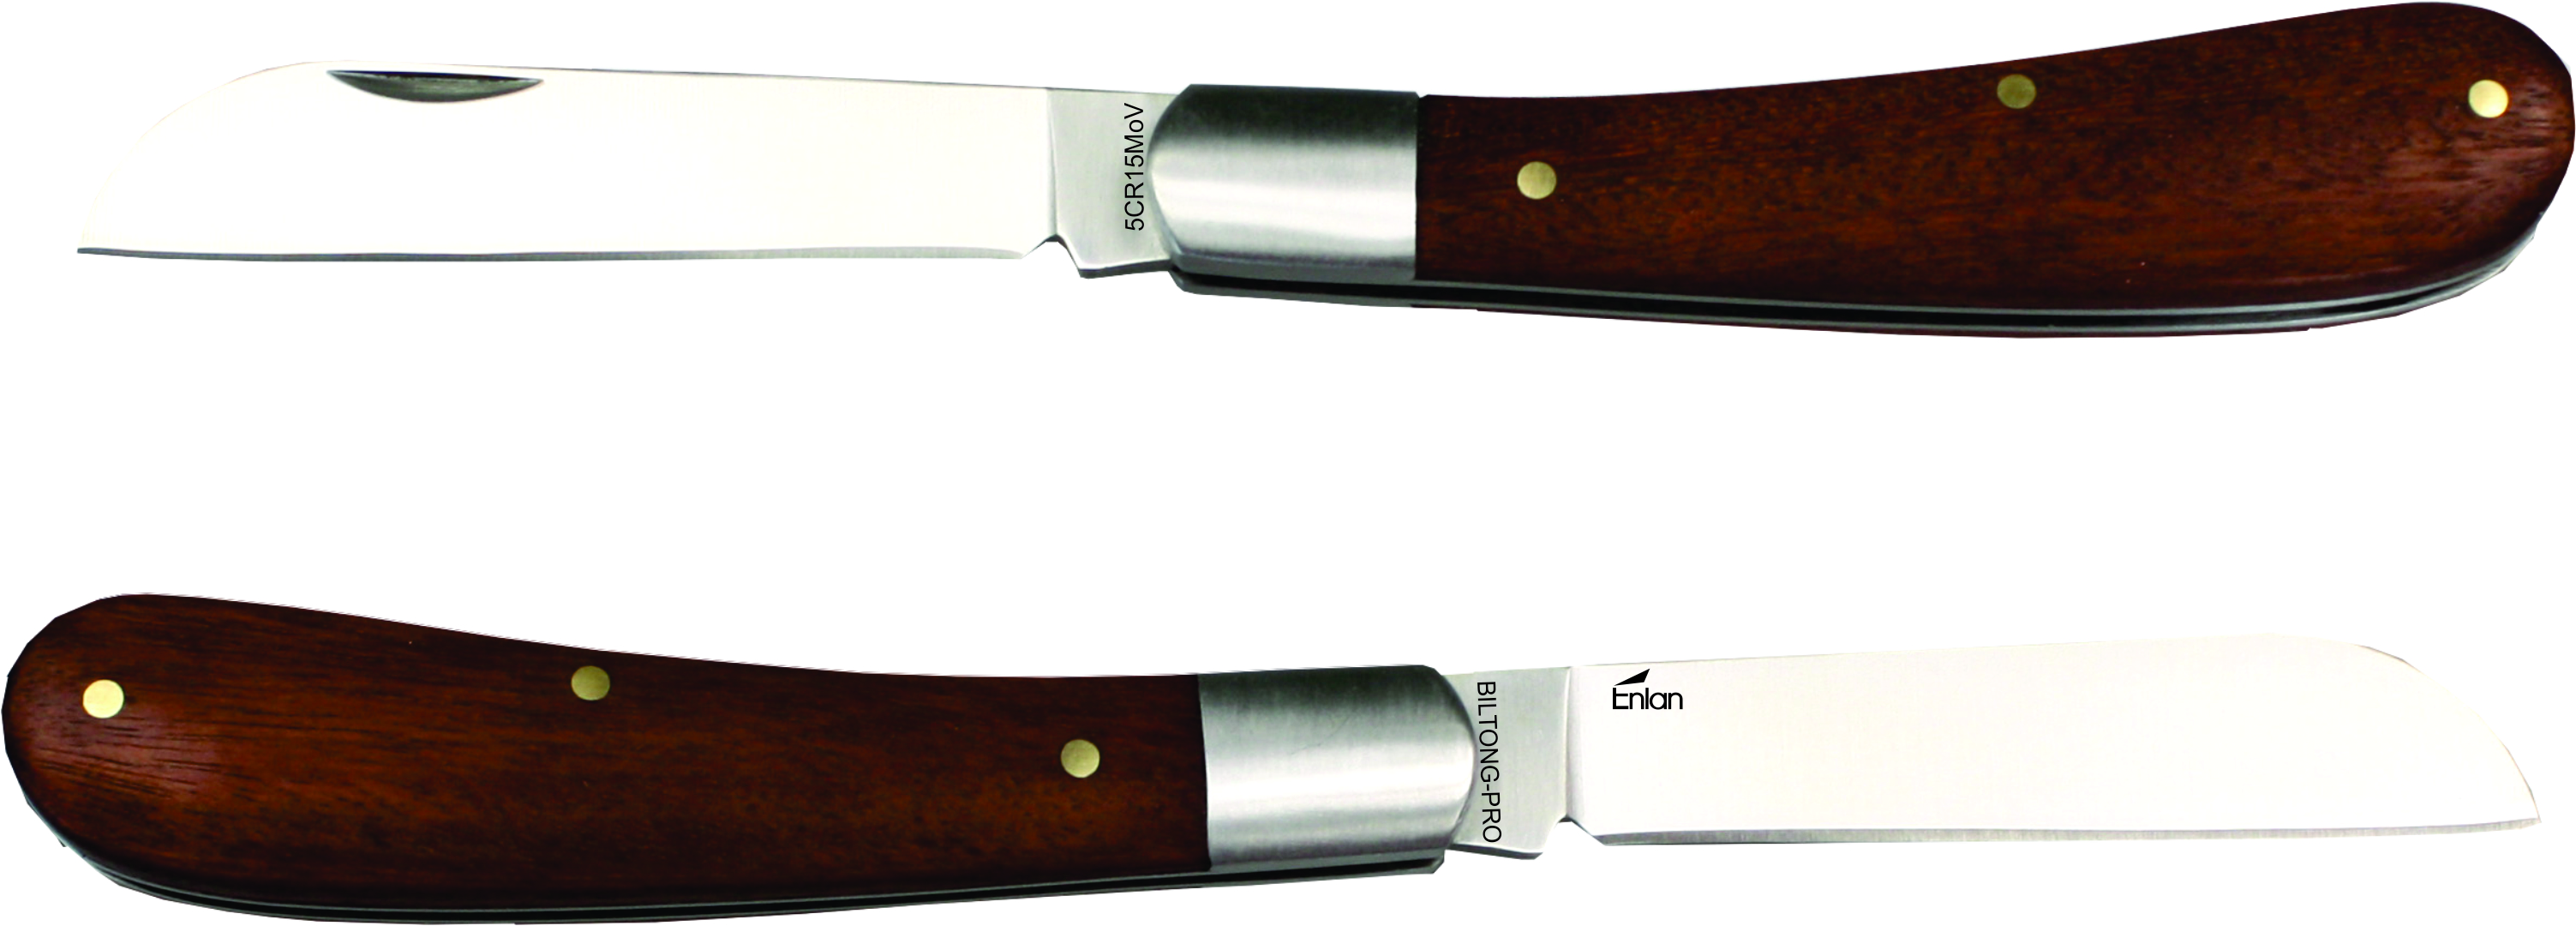 Enlan Biltong Pro 2 Wood folder.